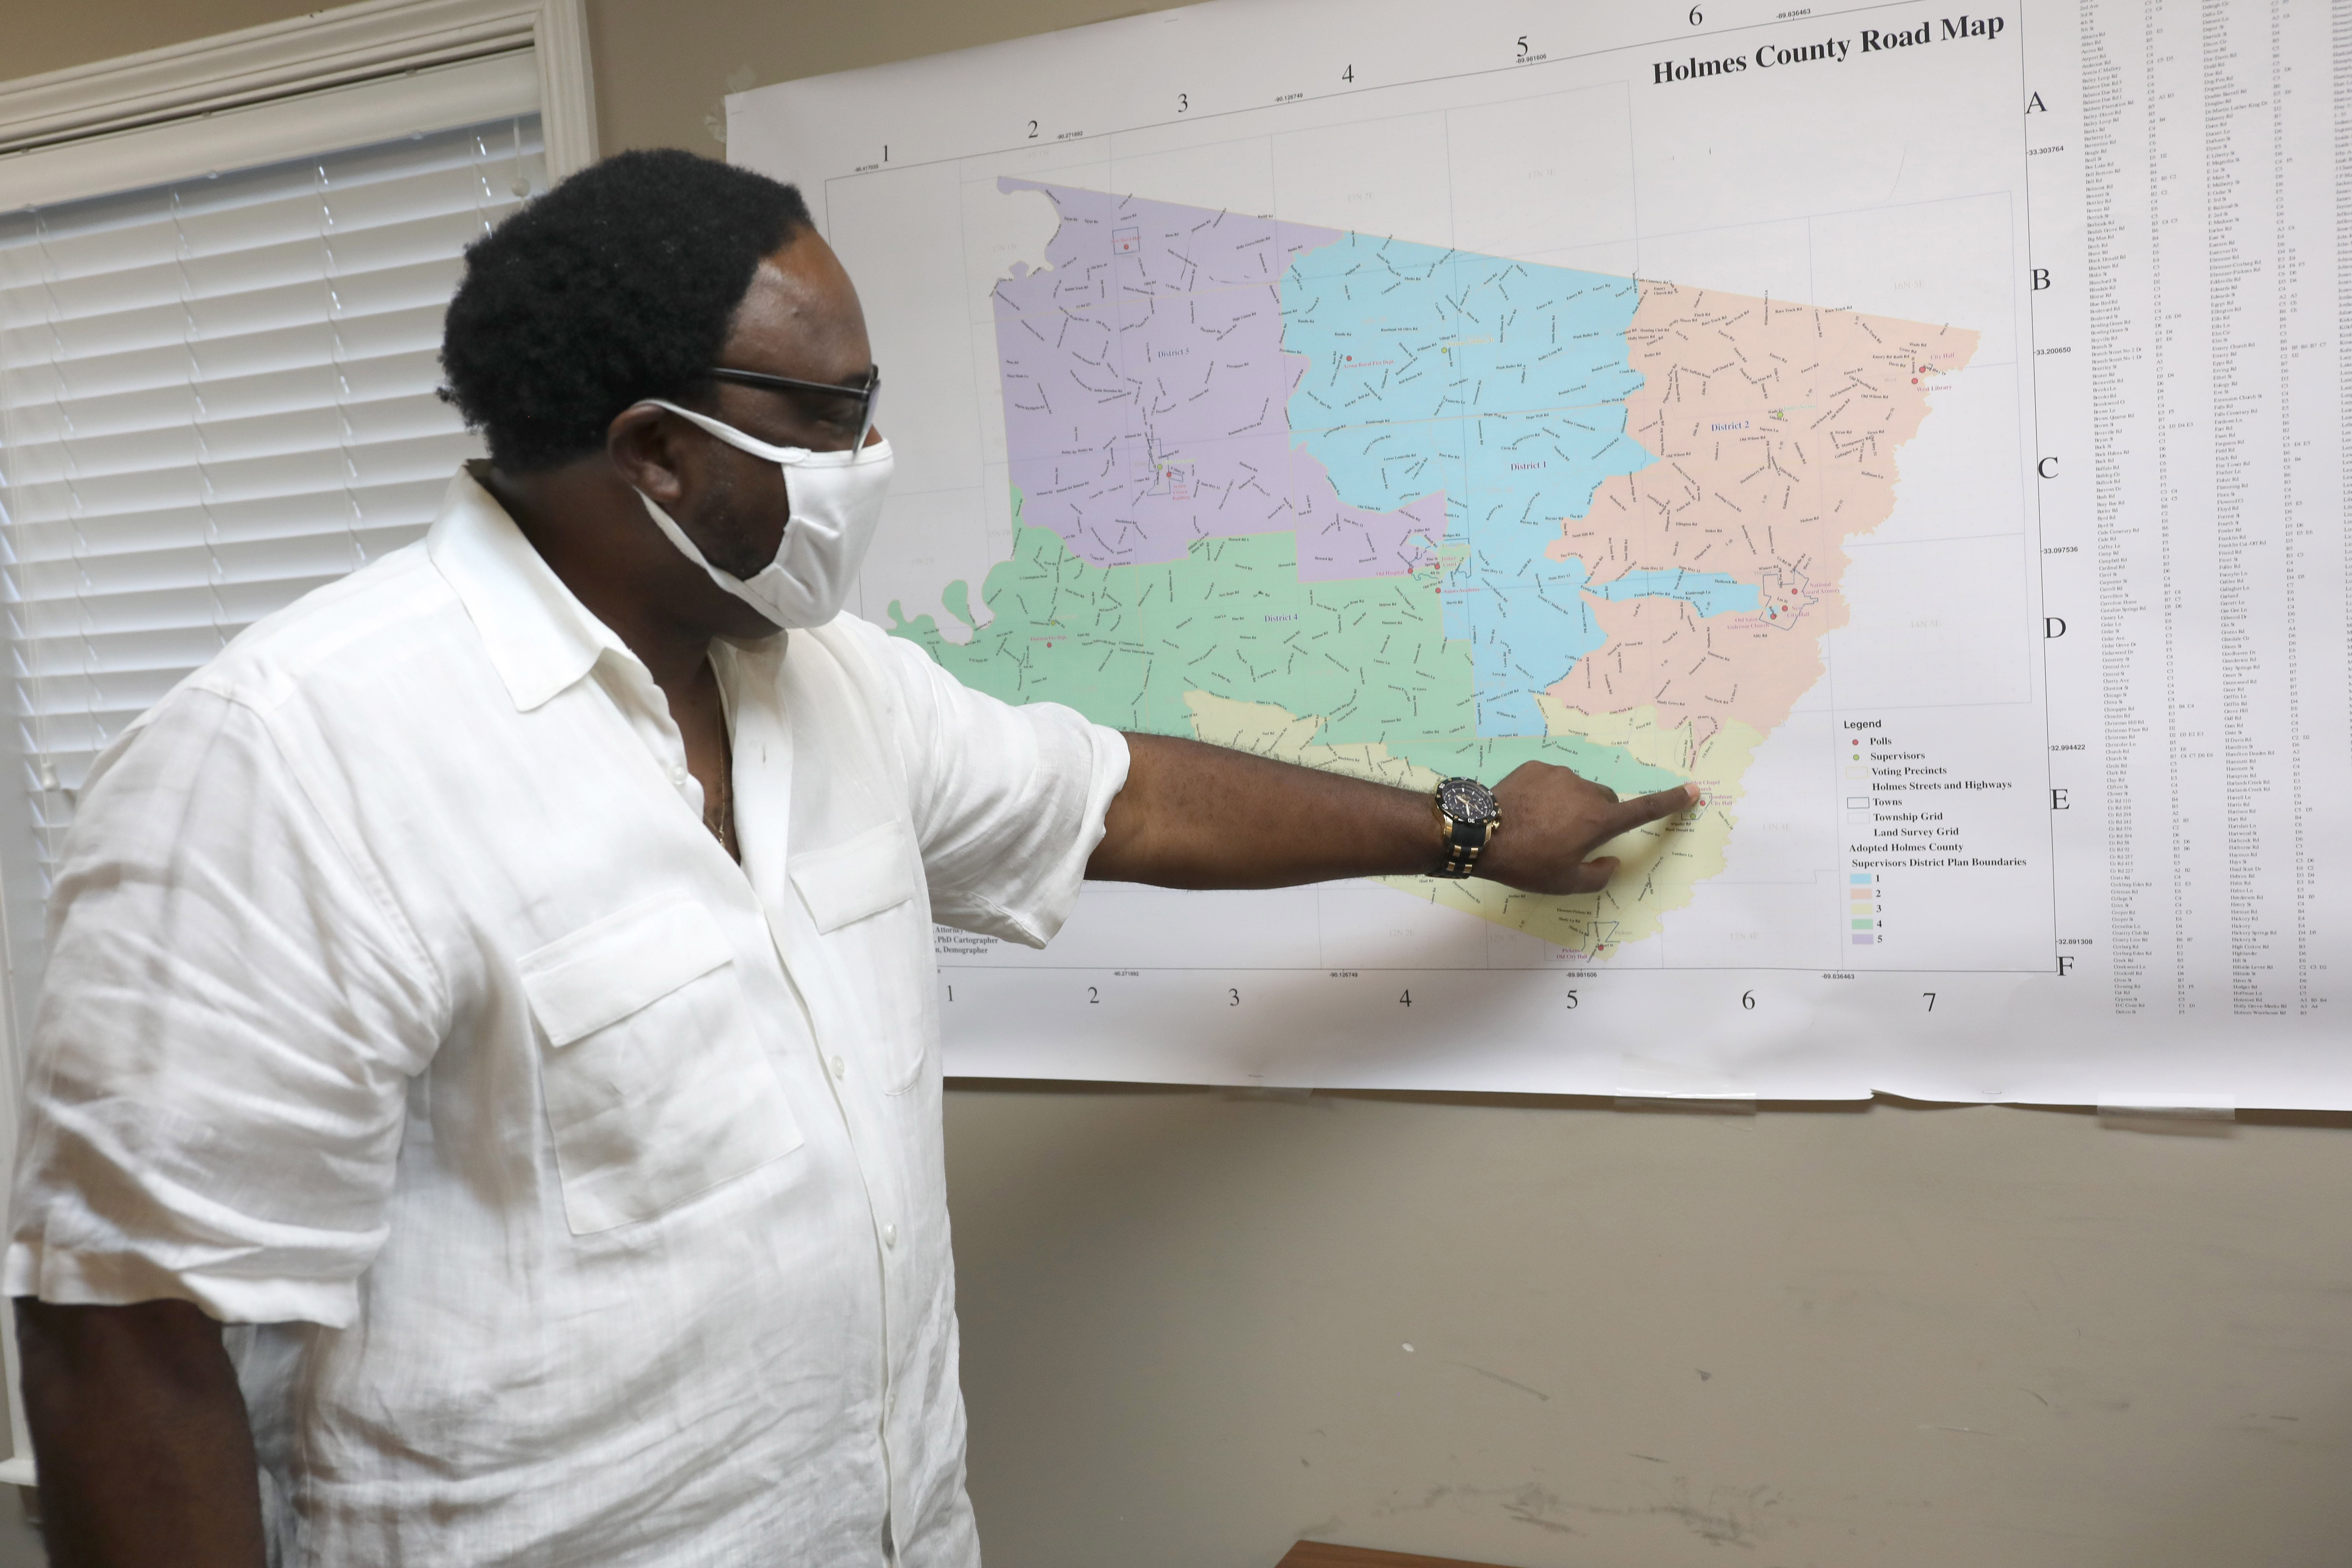 Holmes County Supervisor Leroy Johnson, seen here Nov. 15, says COVID-19 was made worse in Mississippi because of the lack of health care funding to rural areas like his, the most impoverished in the state.